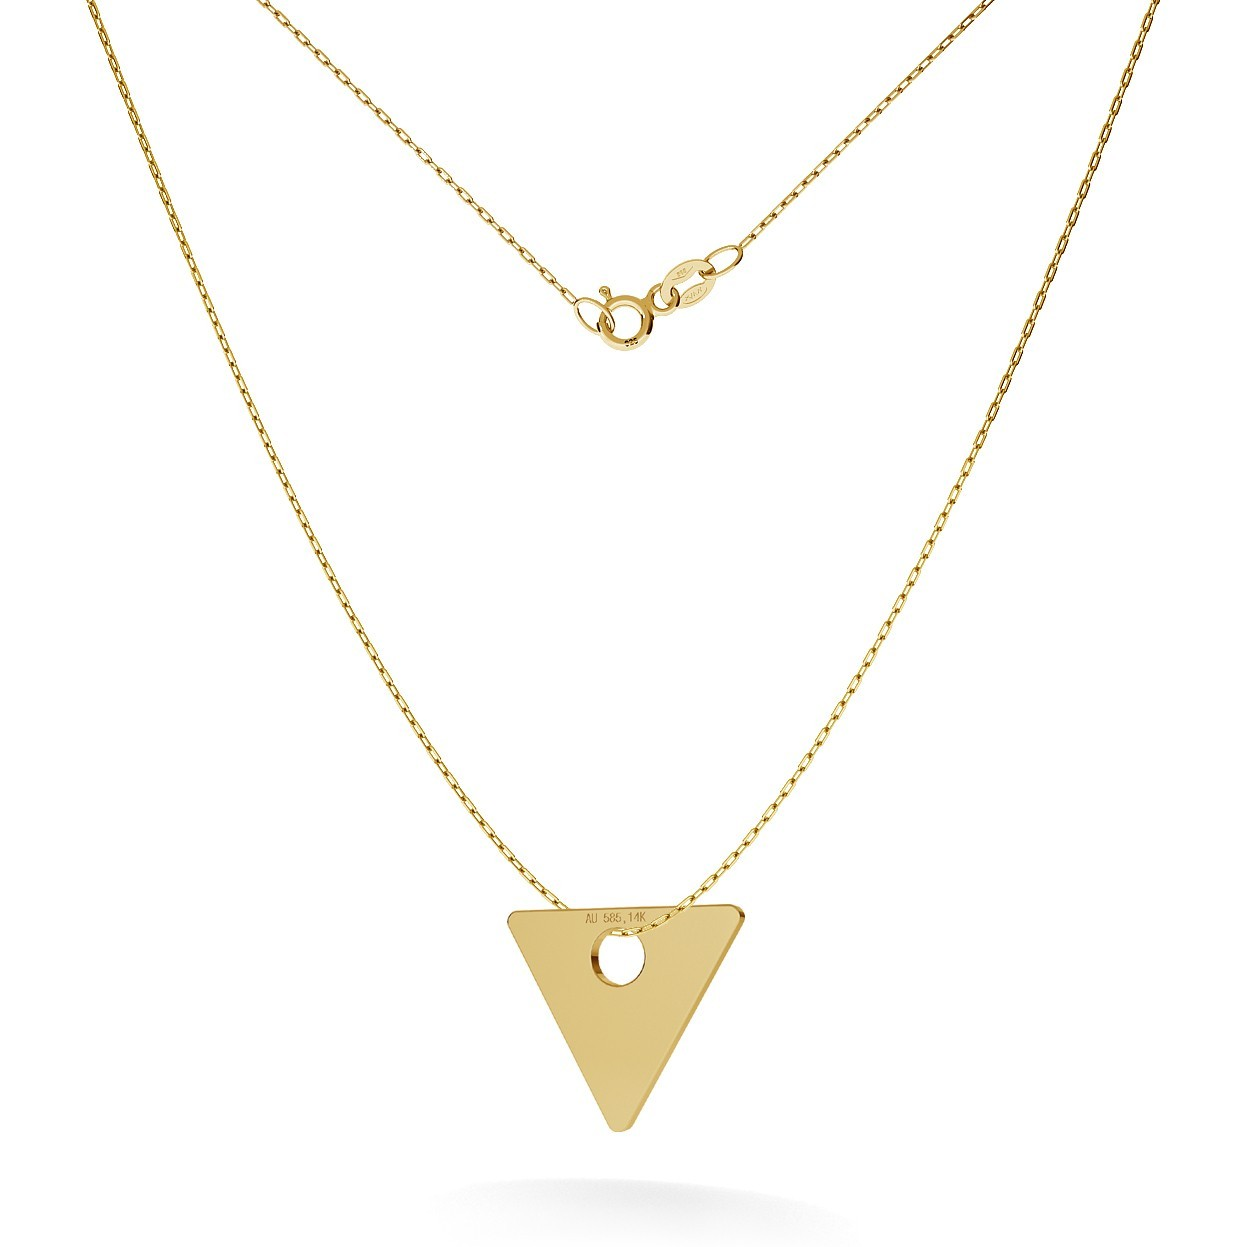 GOLD TRIANGLE NECKLACE 14K, MODEL 4